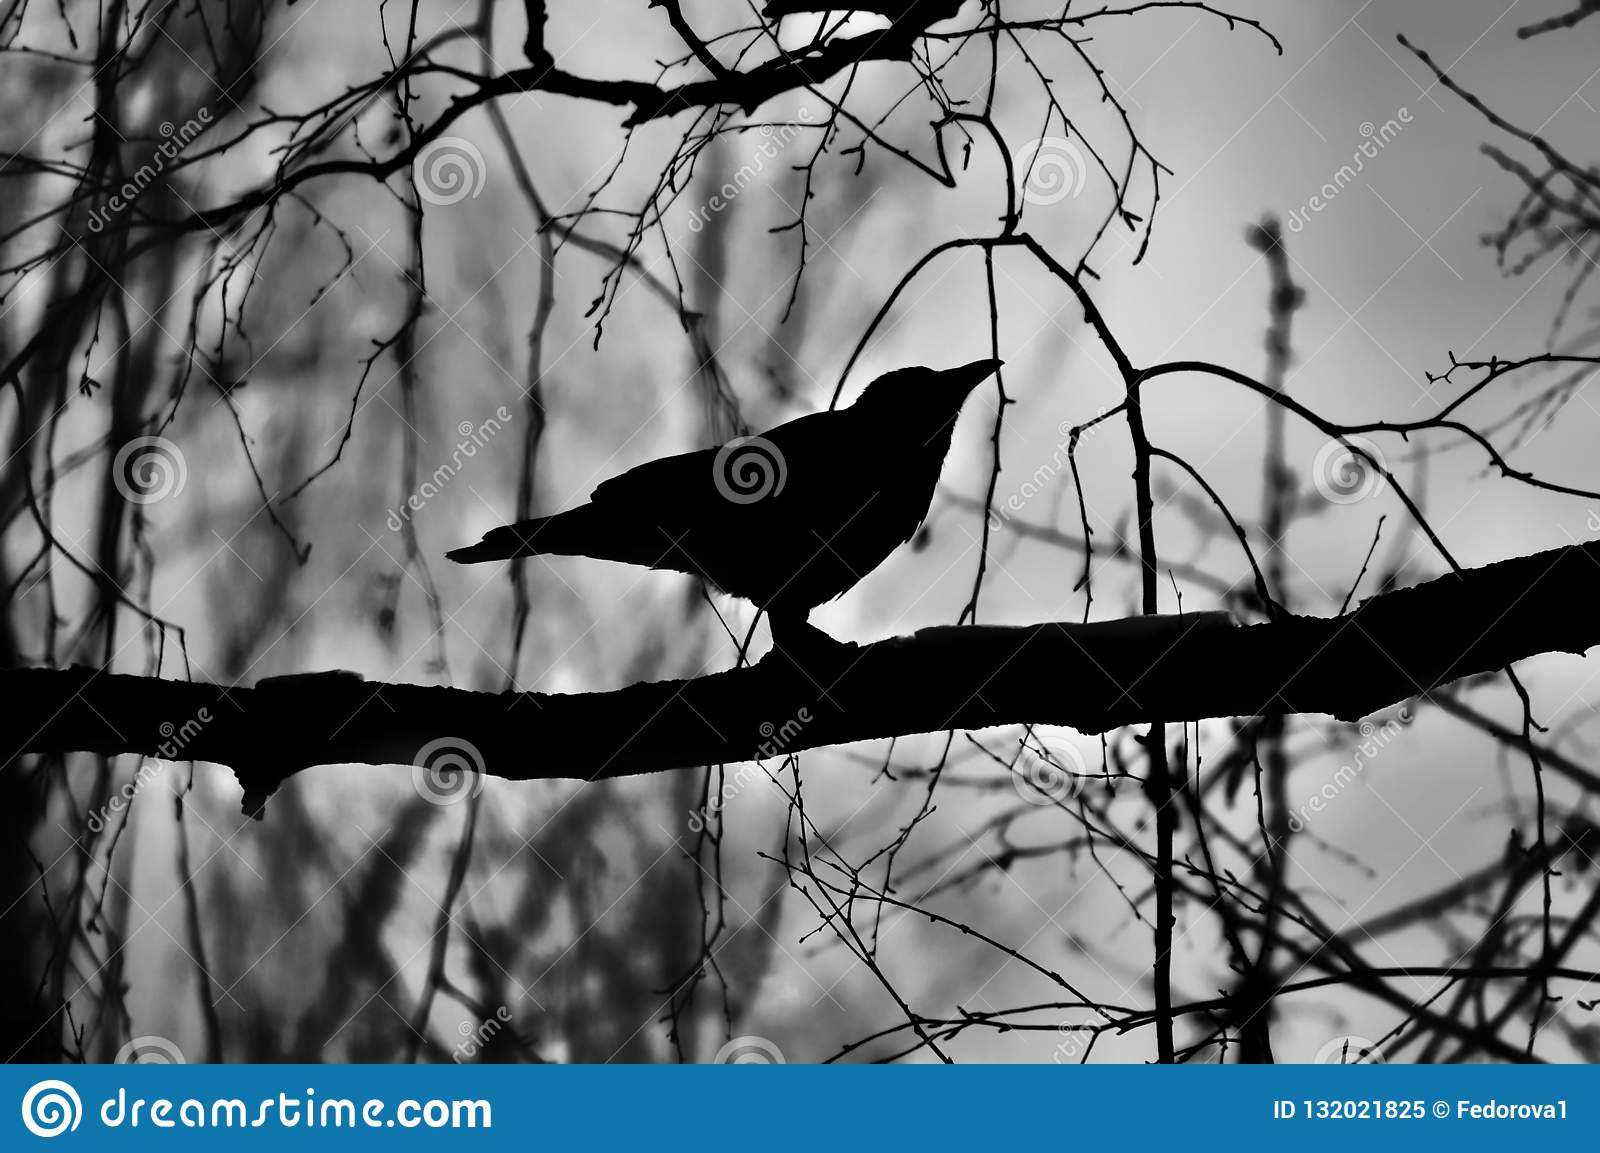 Black Silhouette Of A Crow On A Branch Stock Image - Image ...